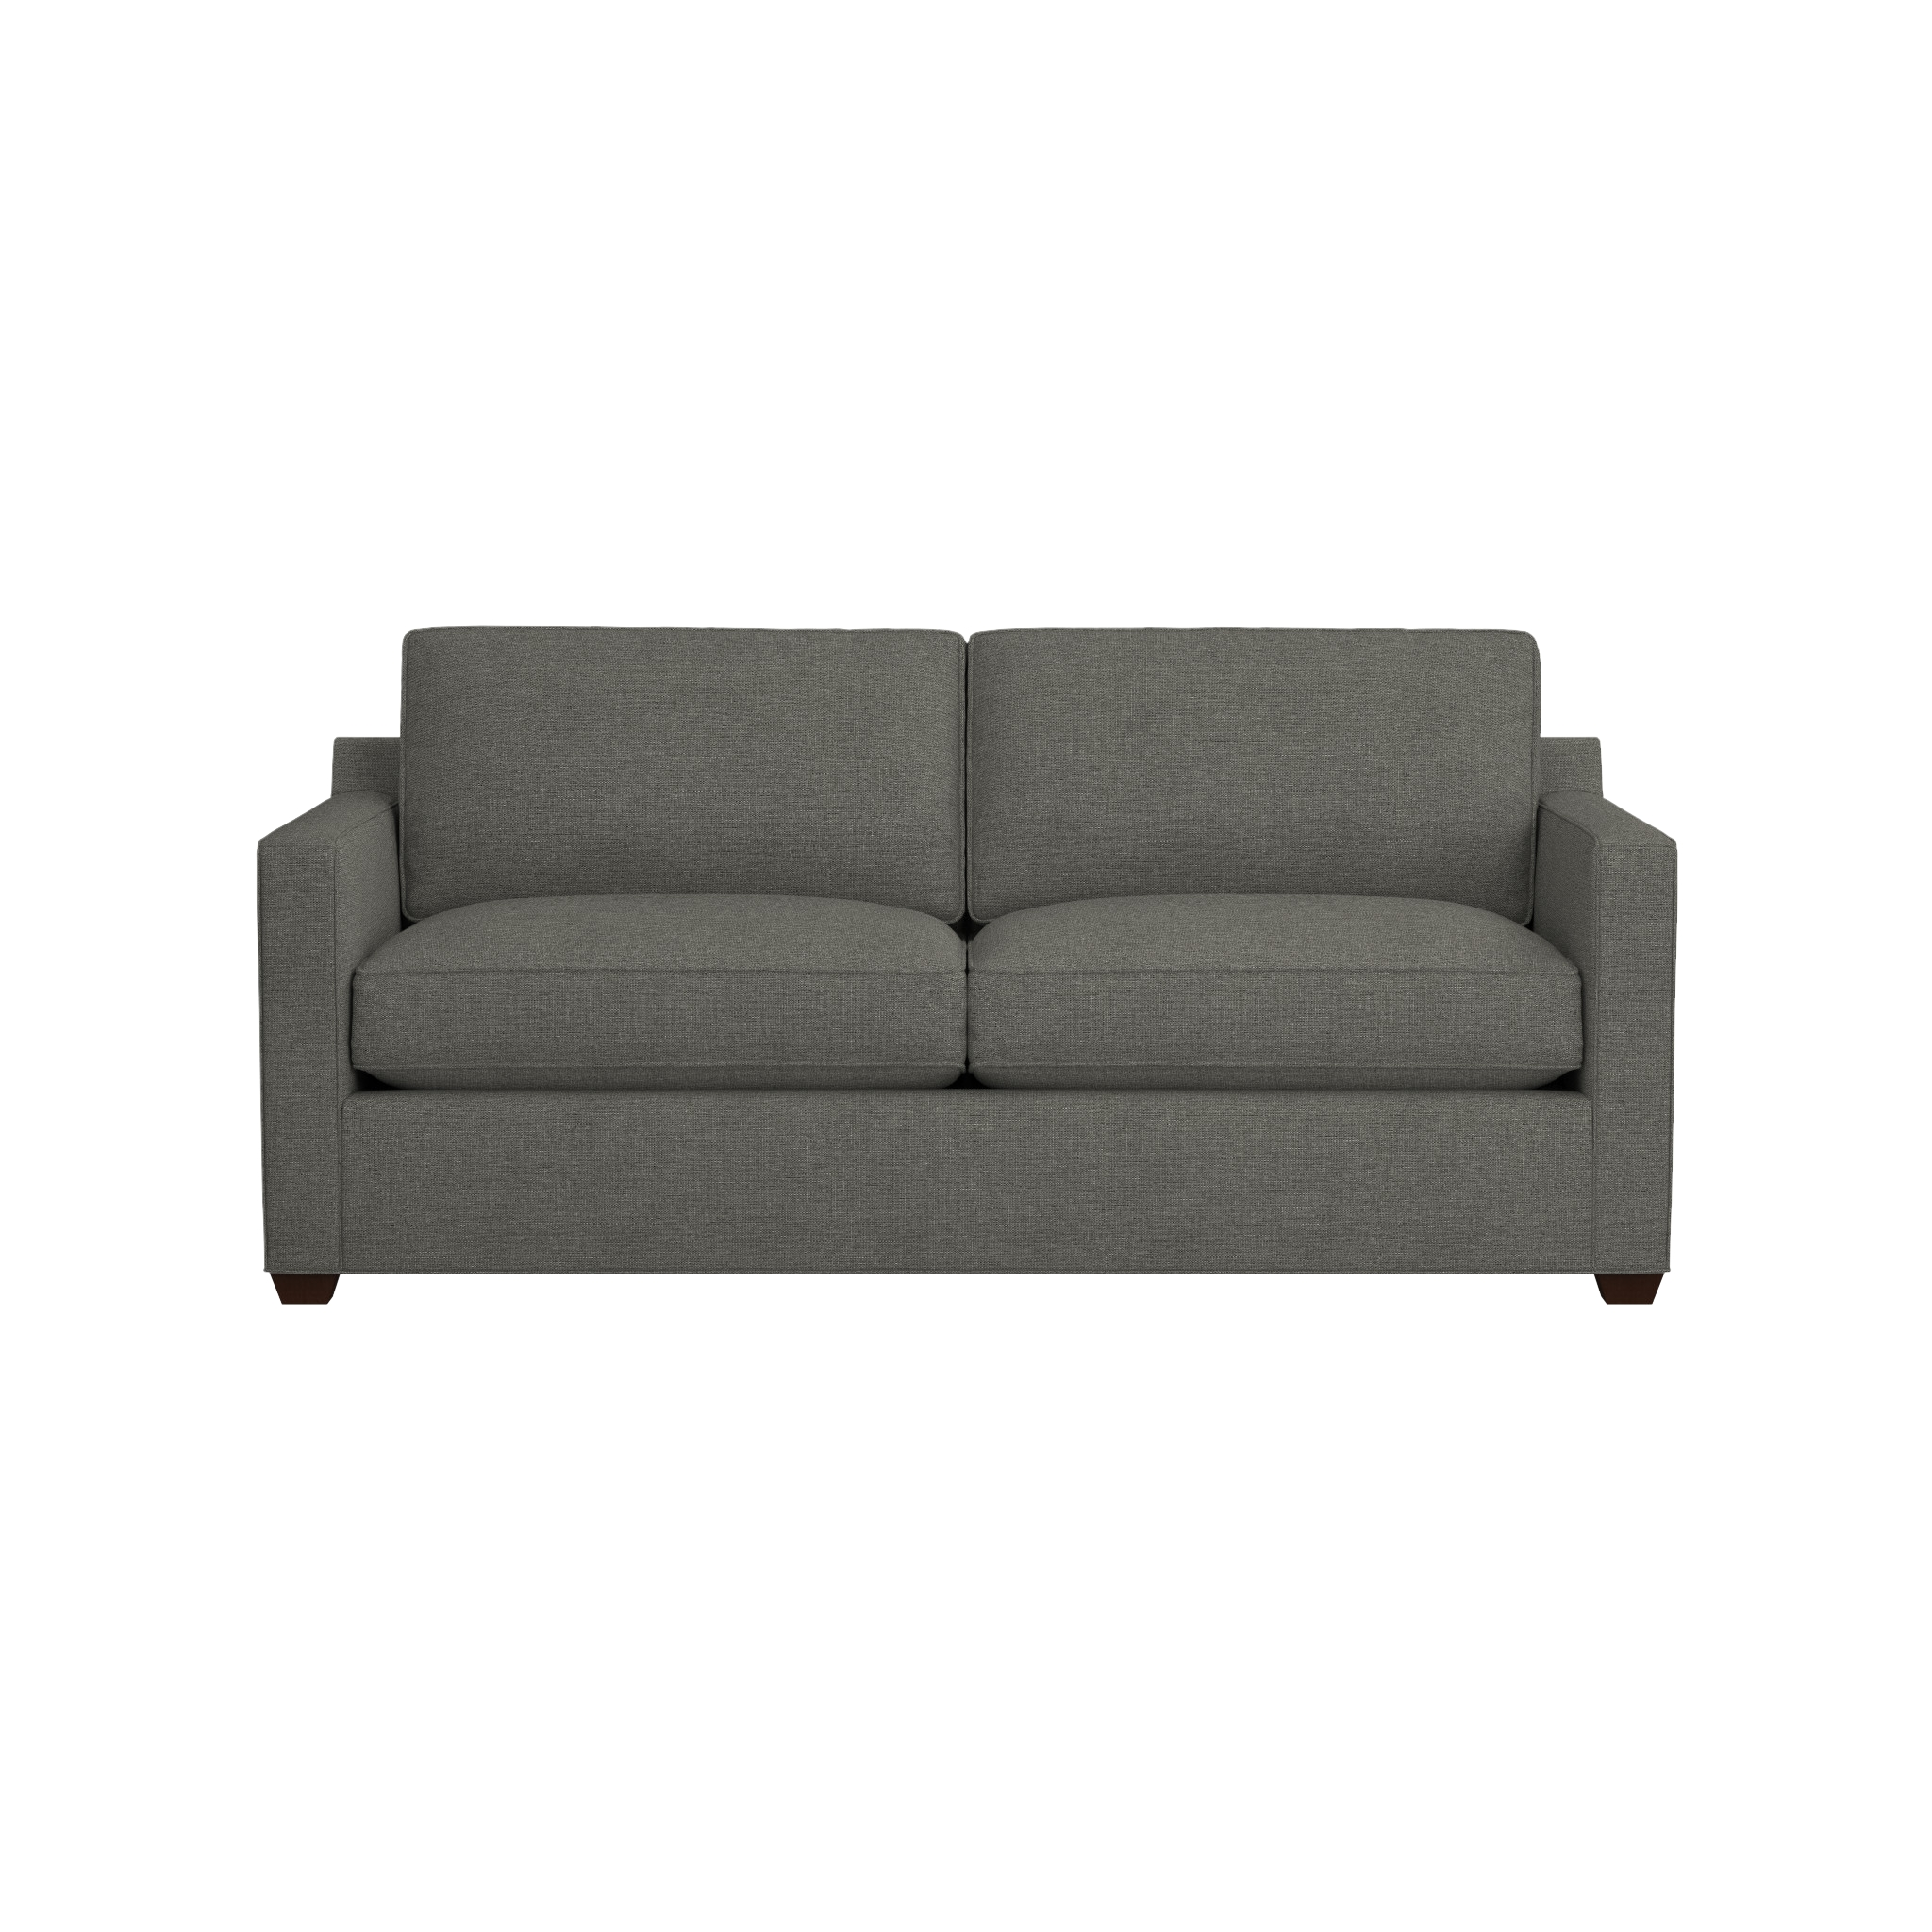 Davis Queen Sleeper Sofa | Crate And Barrel Intended For Crate And Barrel Sofa Sleepers (Image 9 of 20)